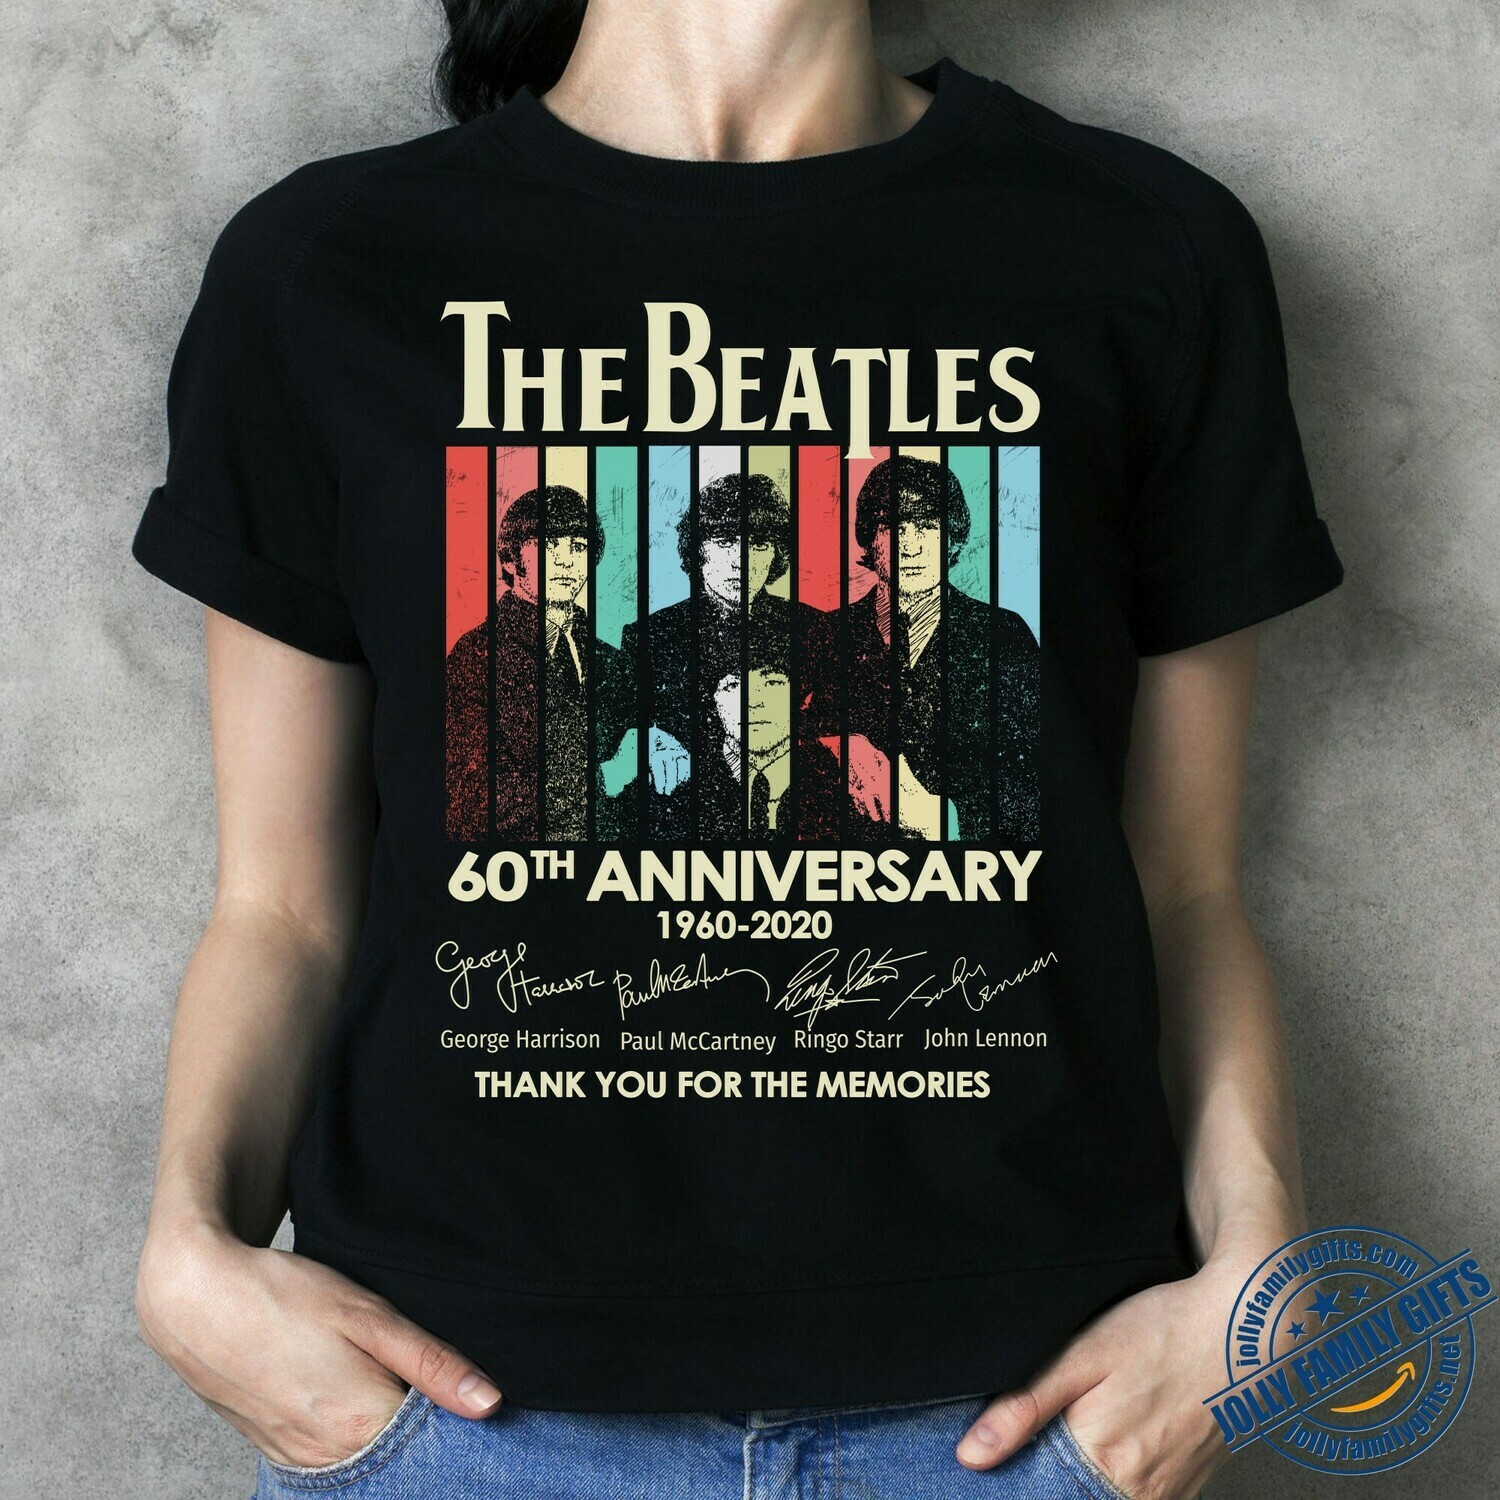 The beatles 60th anniversary 1960 - 2020 thank you for the memories signal Classic Rock Band Legend Fan  Unisex T-Shirt Hoodie Sweatshirt Sweater Plus Size for Ladies Women Men Kids Youth Gifts Tee